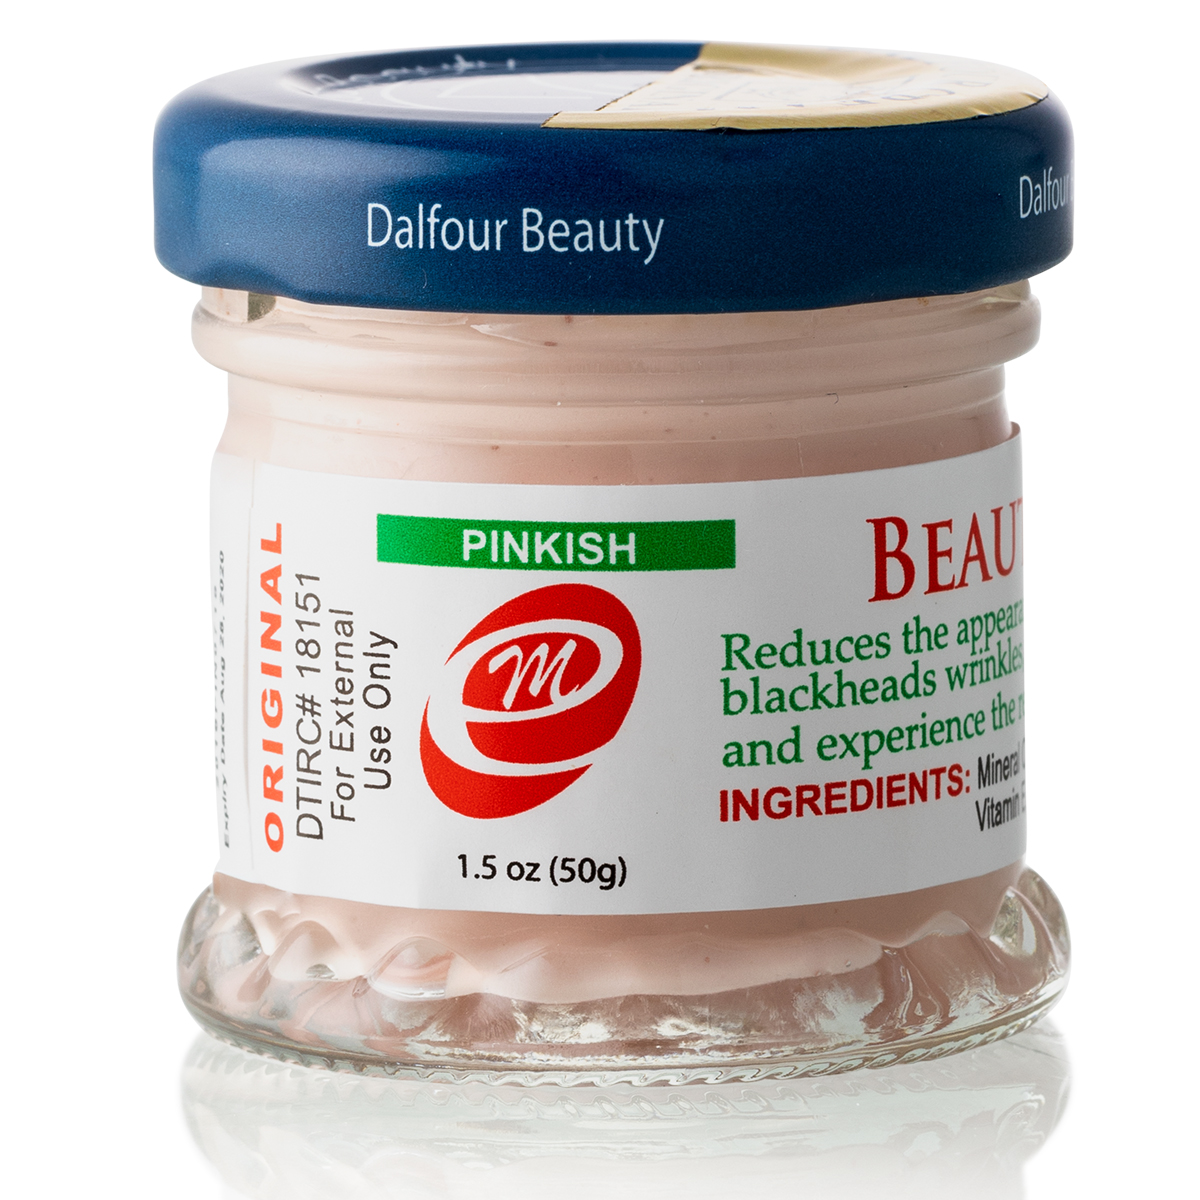 12 Jars of Authentic Dalfour Beauty Gold Seal Whitening Cream Pinkish Cream - For Skin That Needs Extra Moisture